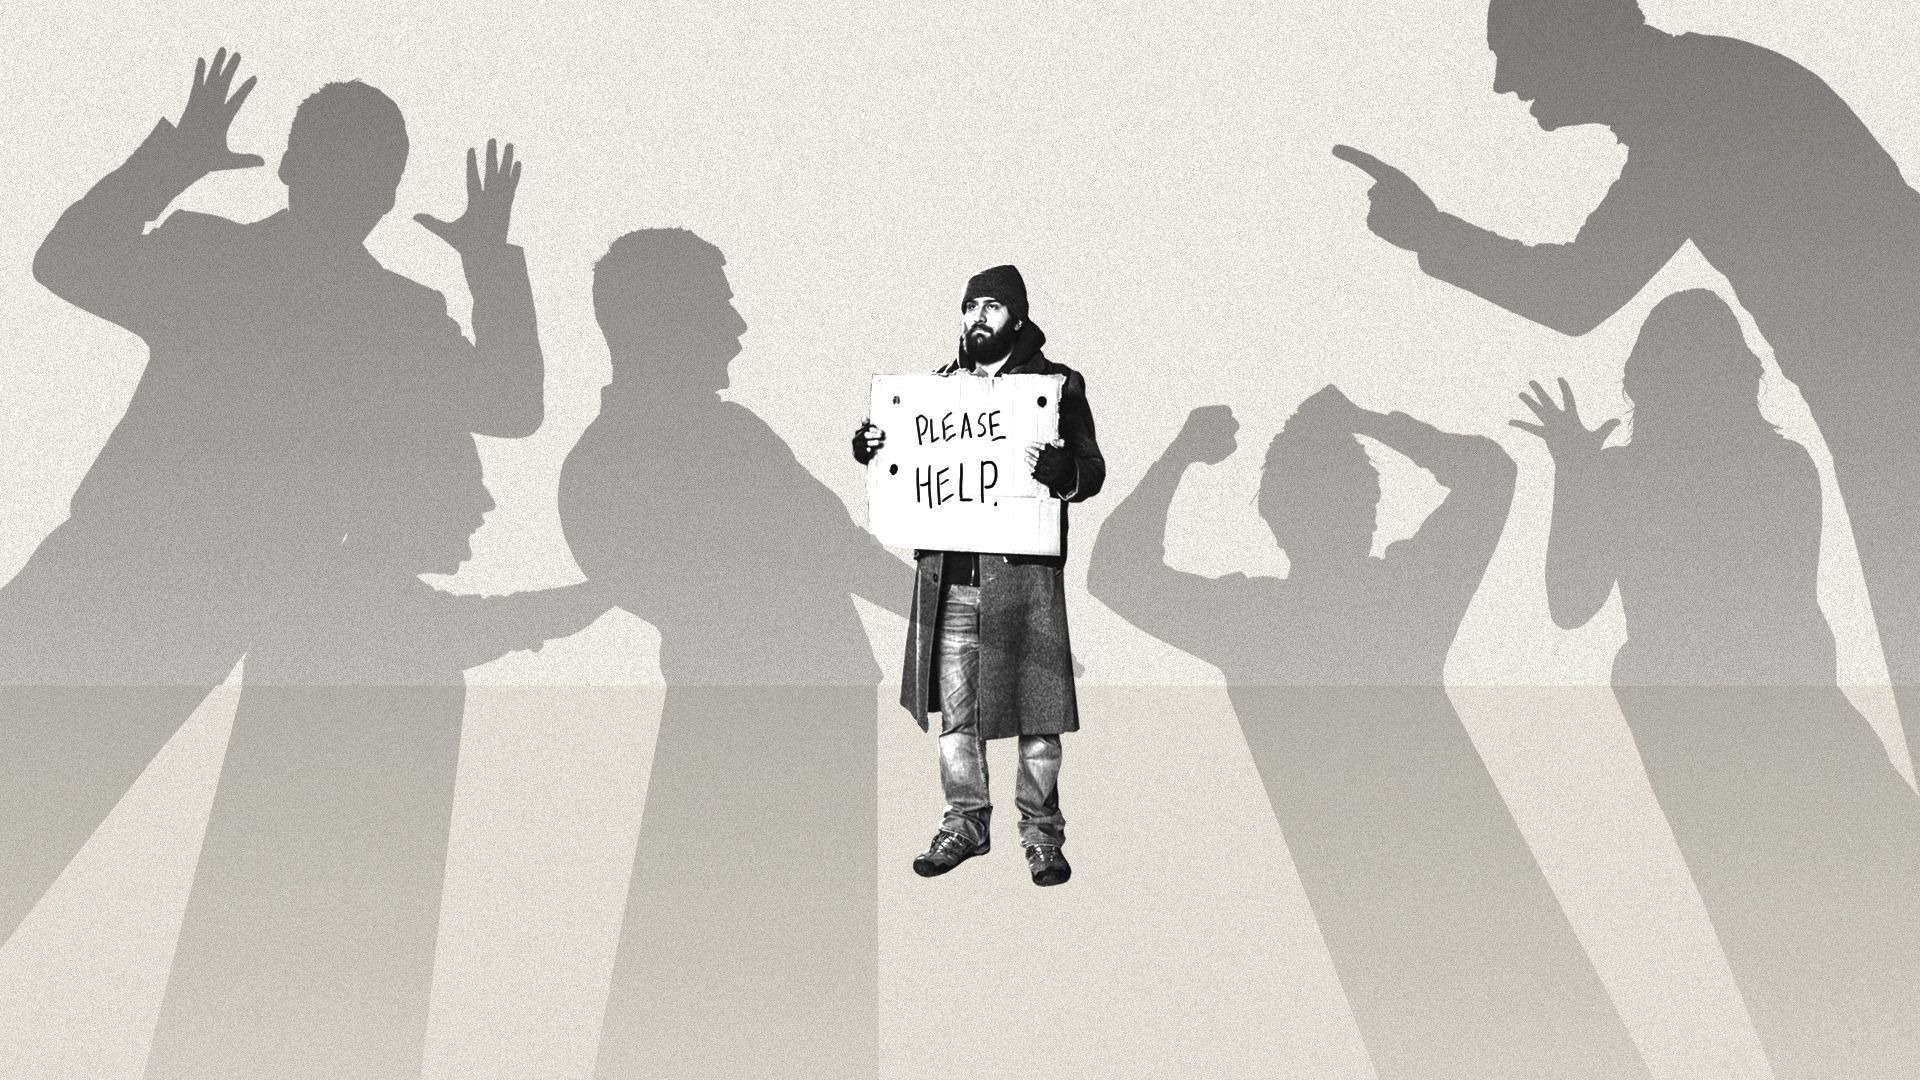 An illustration of shadows pointing fingers and struggling to deal with a homeless person